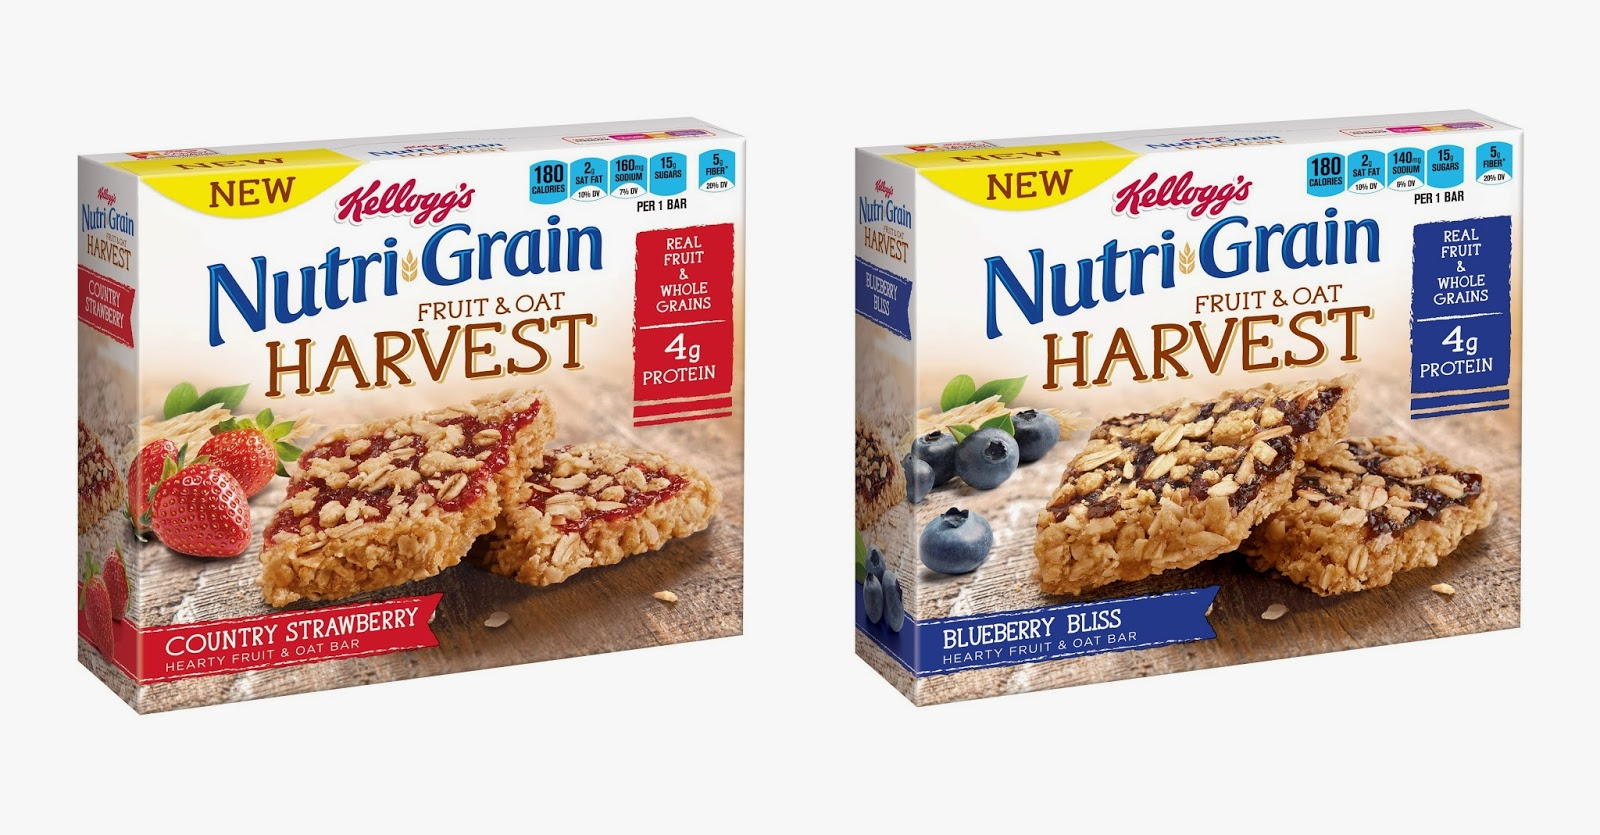 Nutri-Grain Fruit and Oat Harvest bars